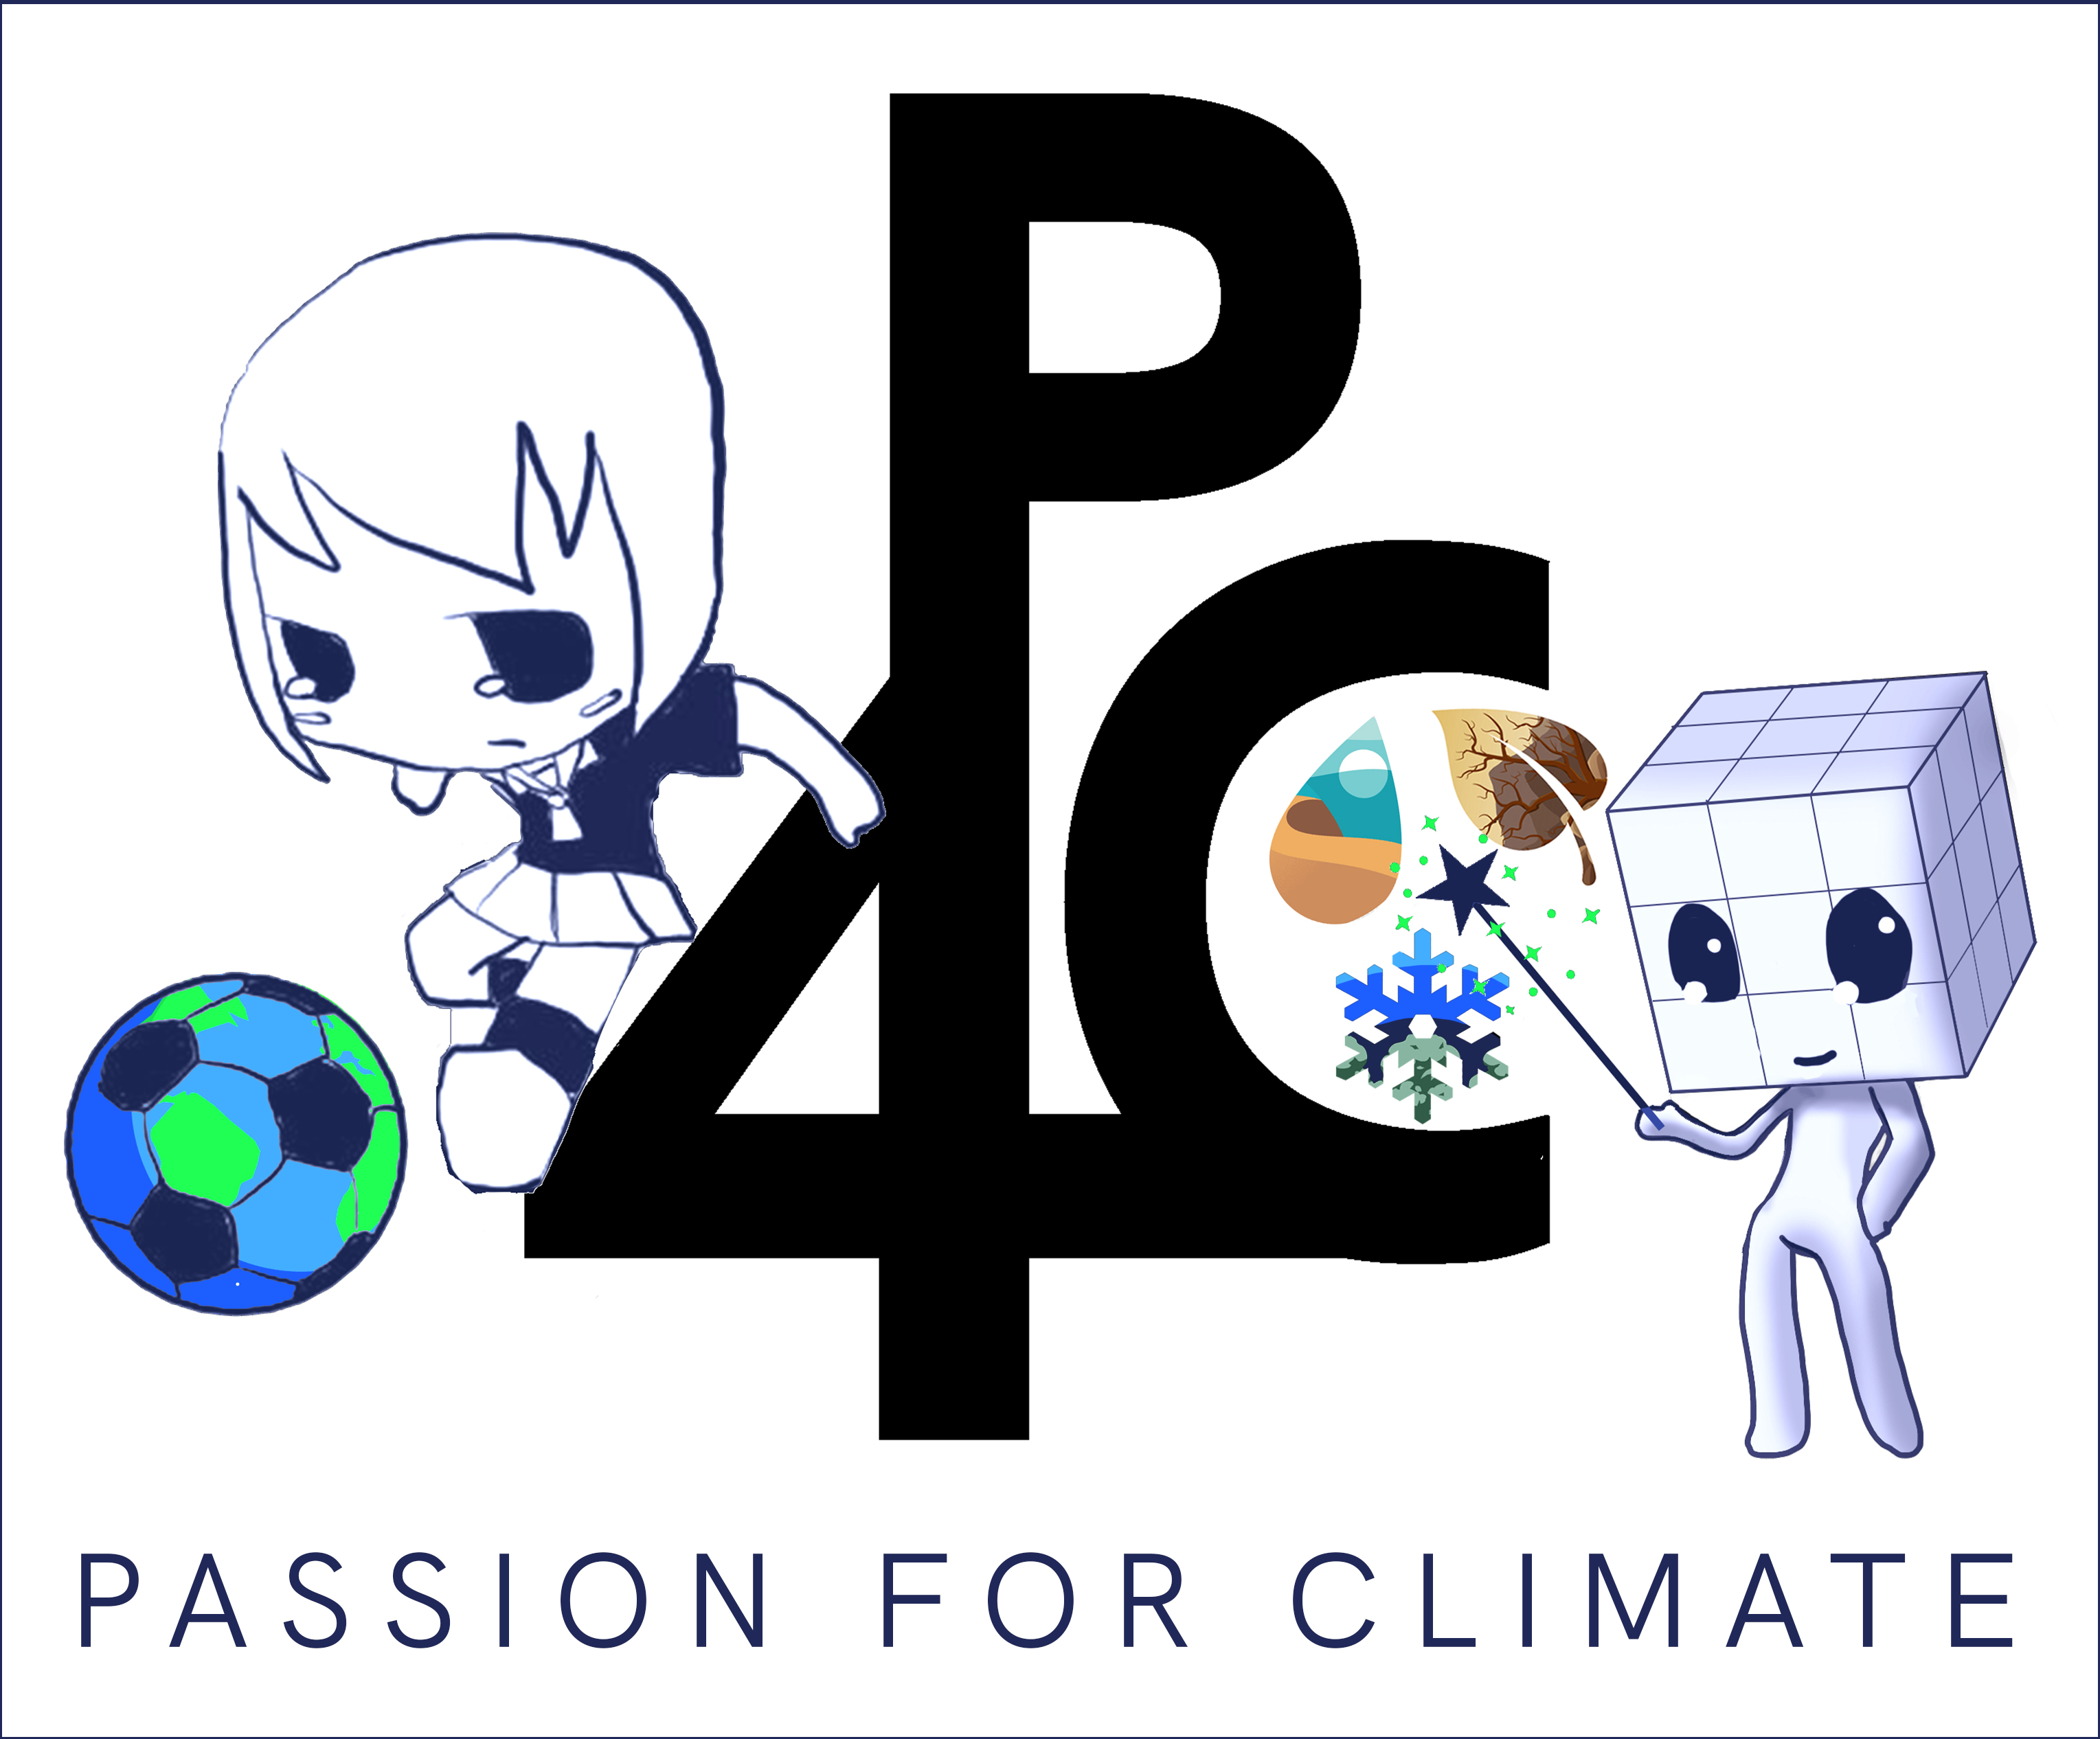 Passion for Climate